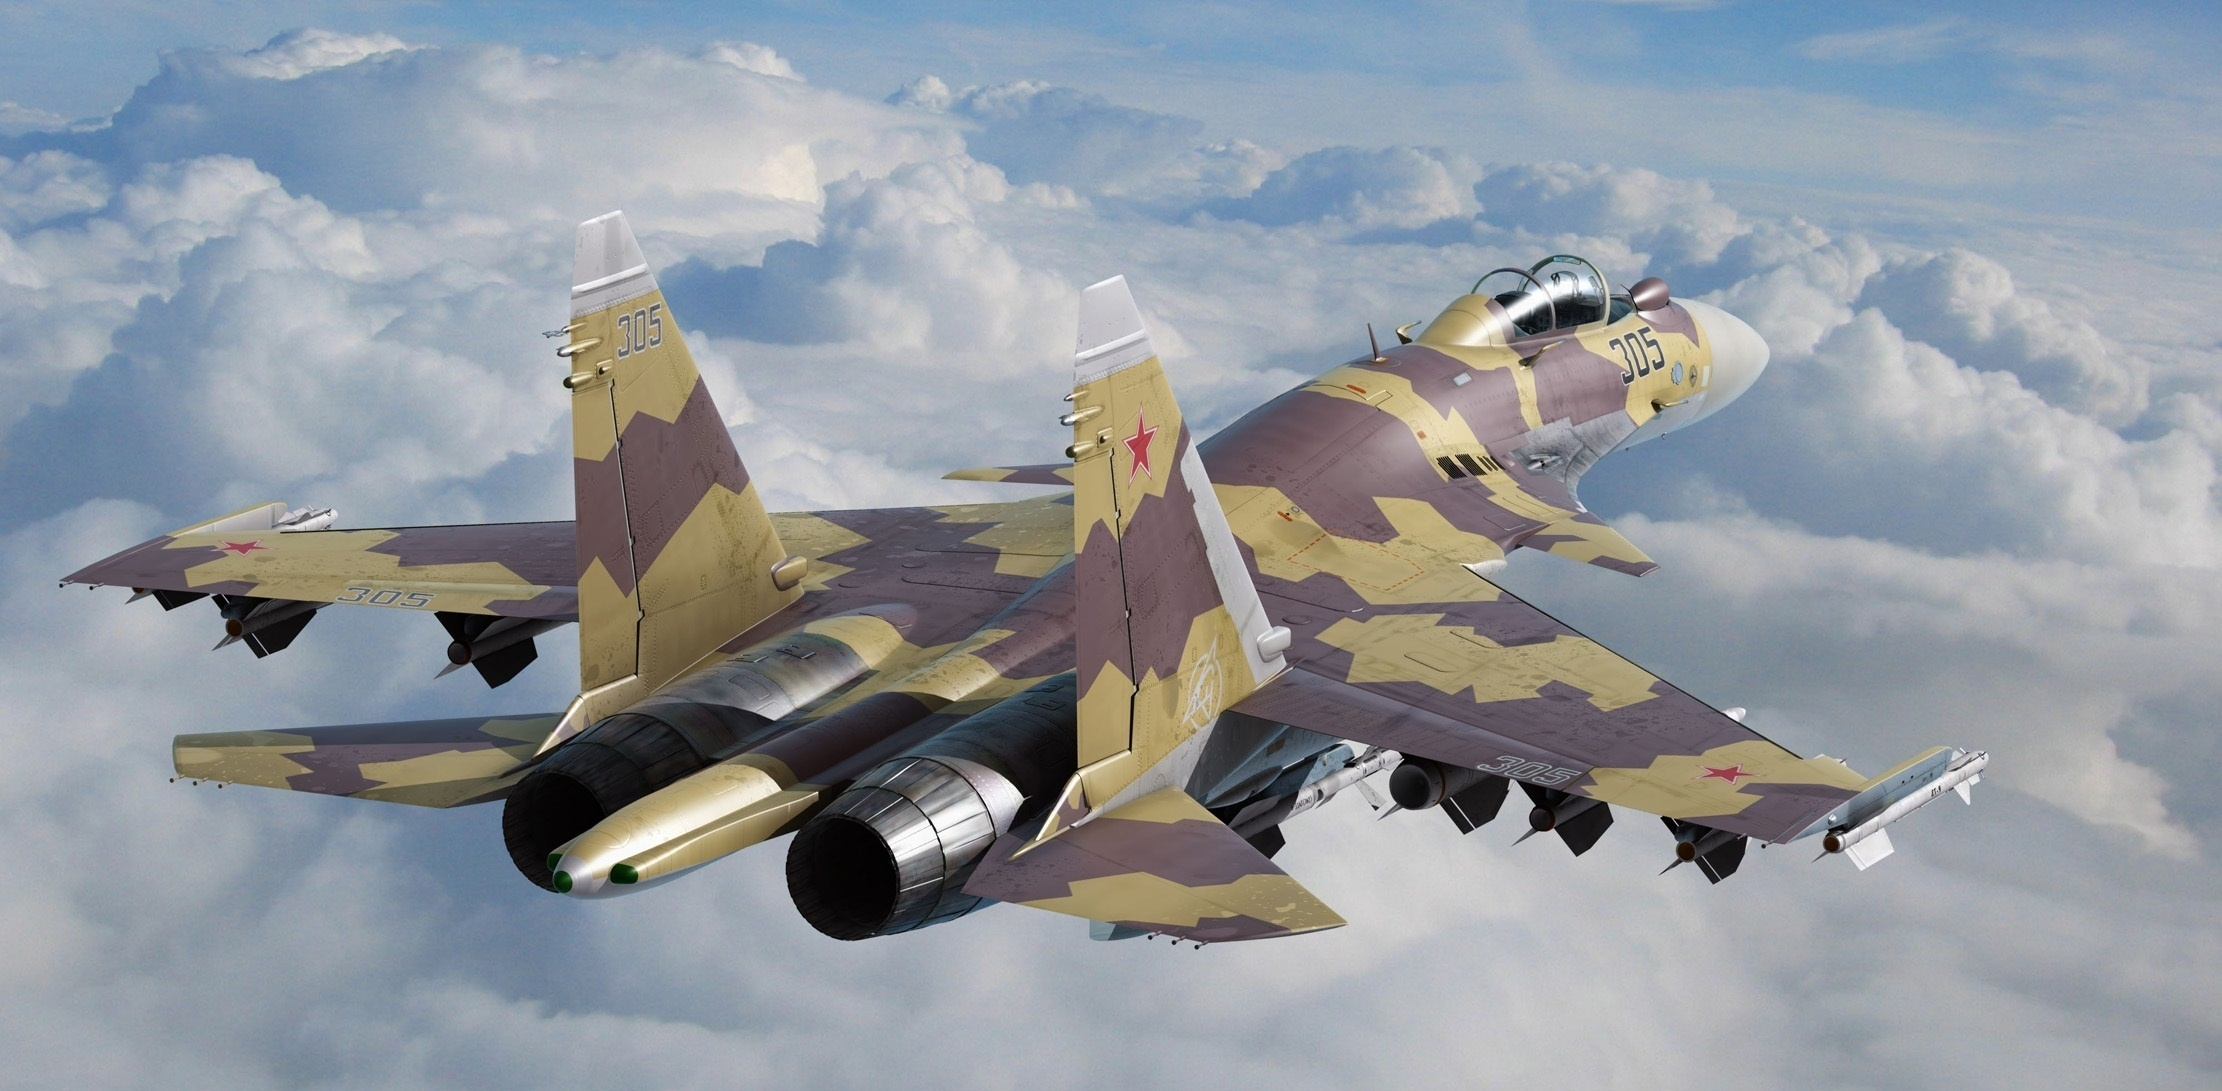 military picture sukhoi su - photo #15